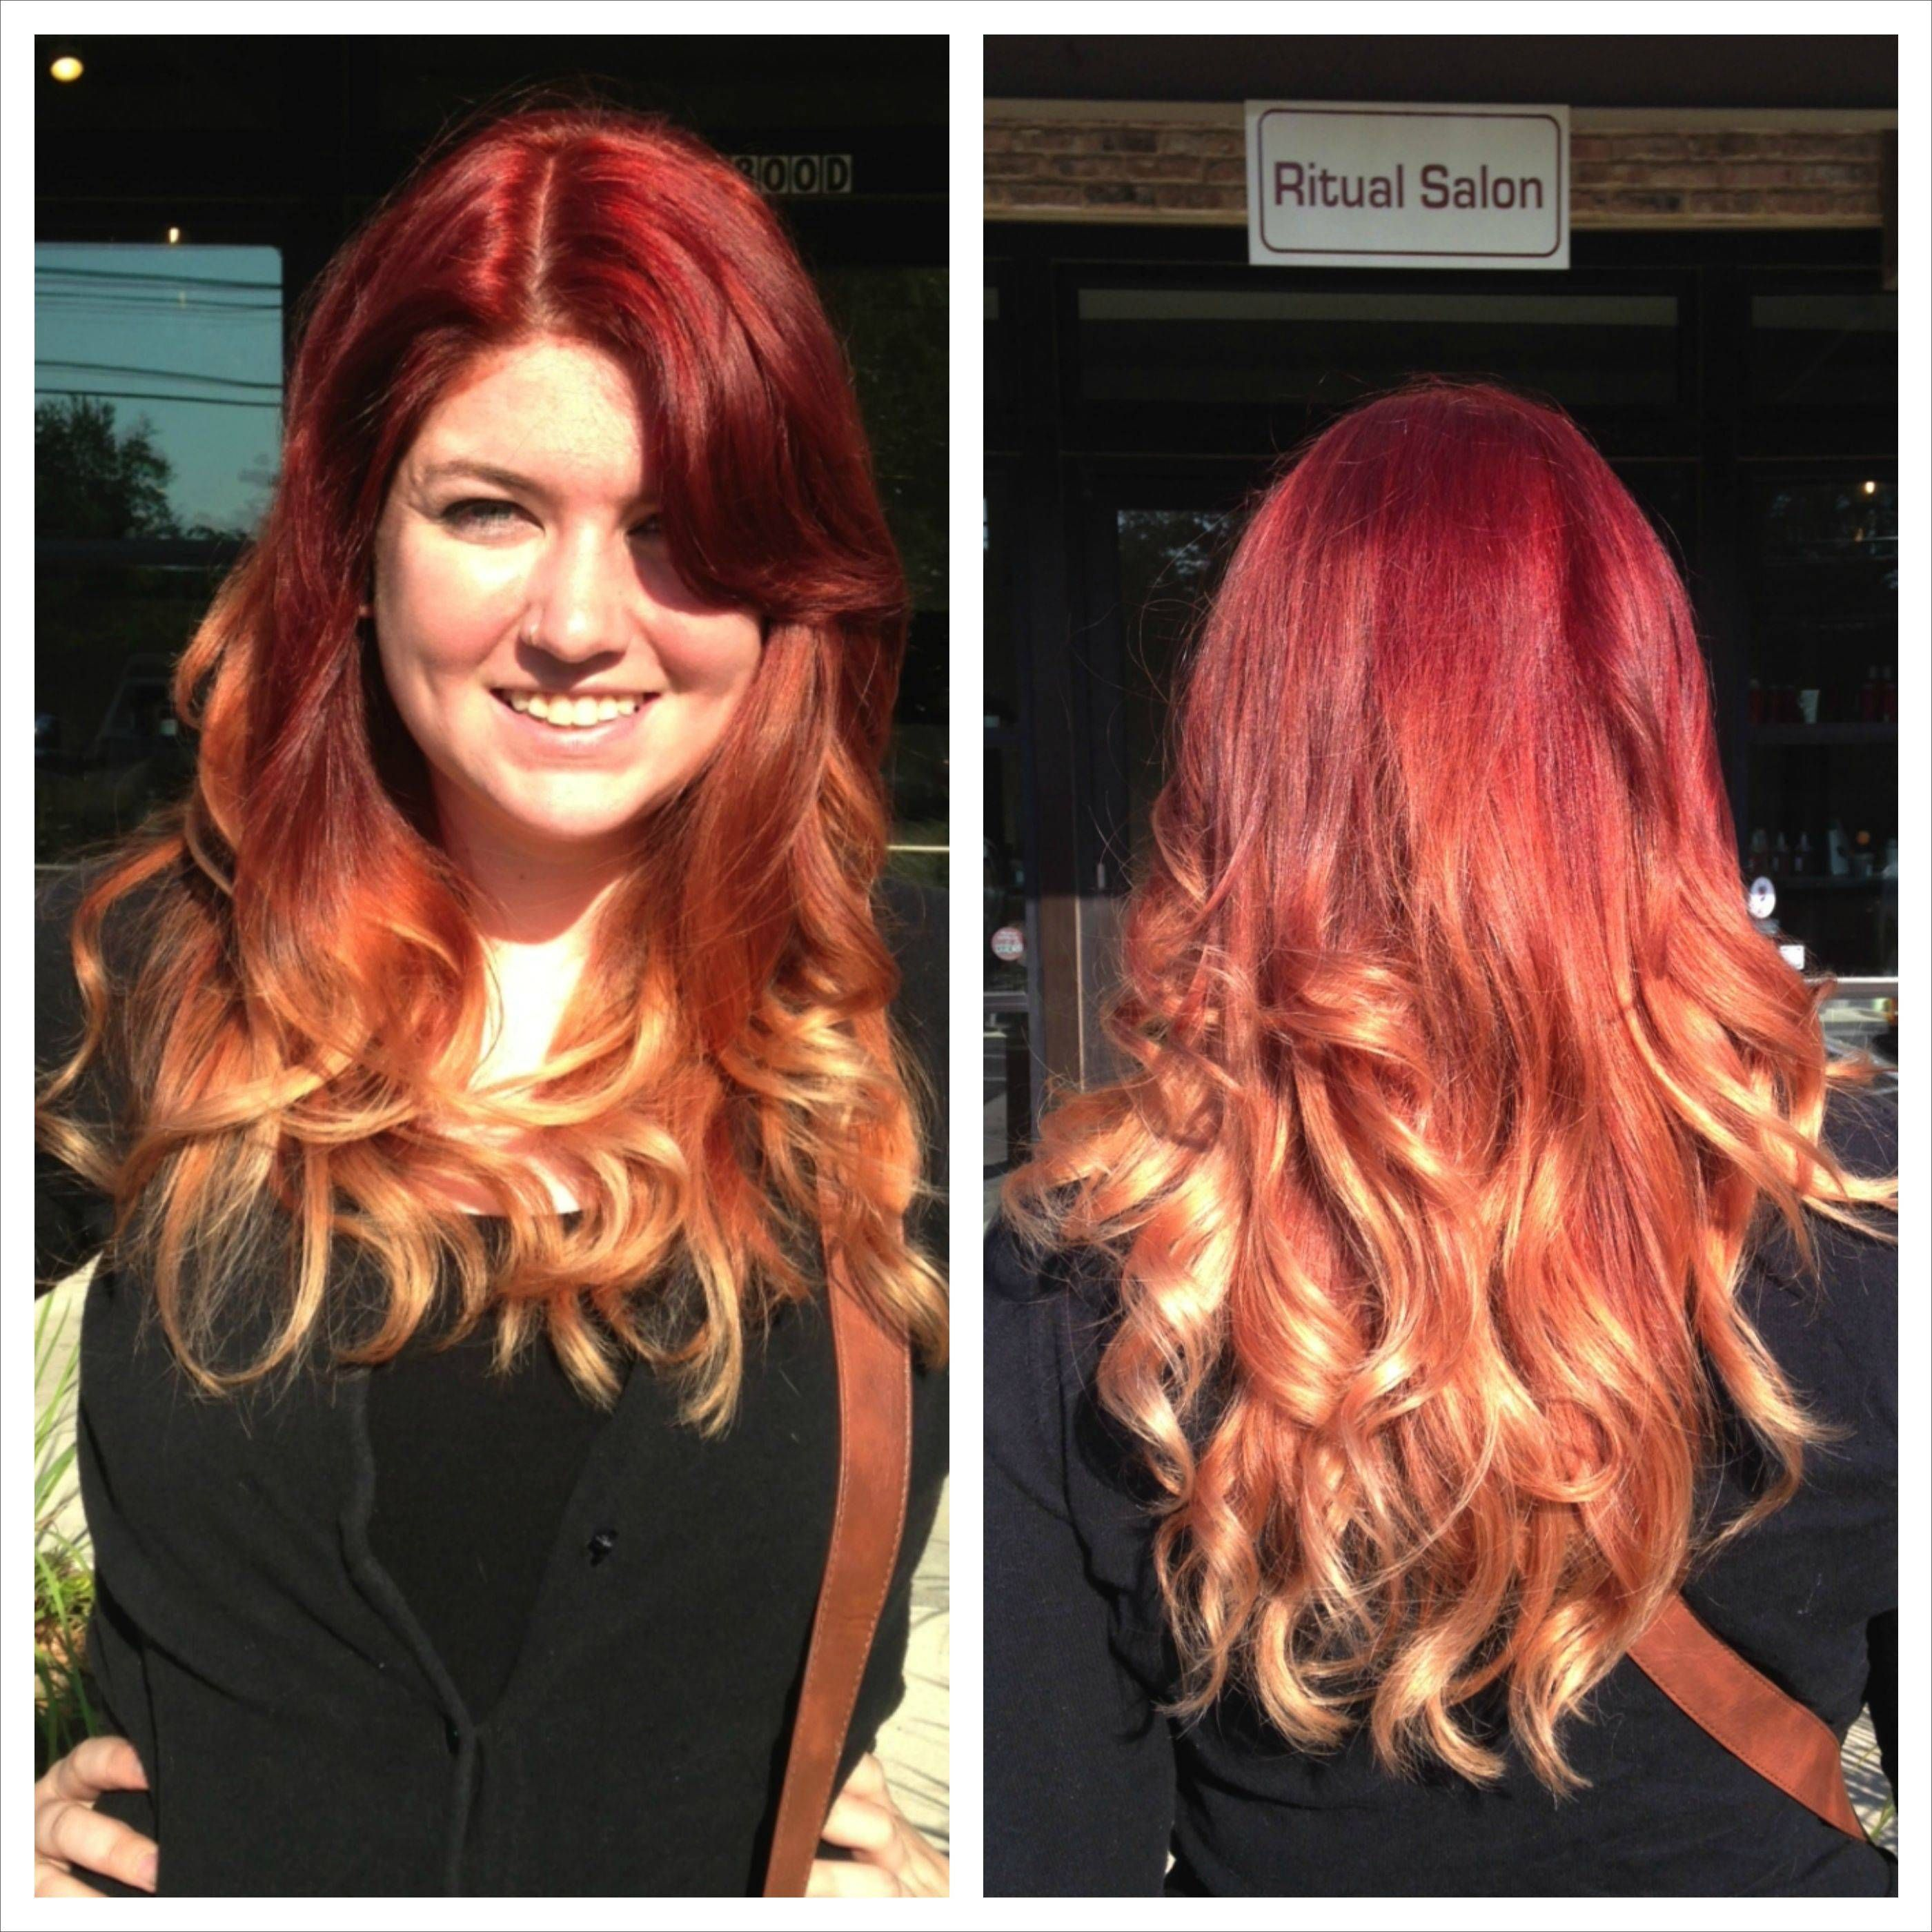 My LONG Red to Blonde Ombre thanks to Sarah at Ritual Salon